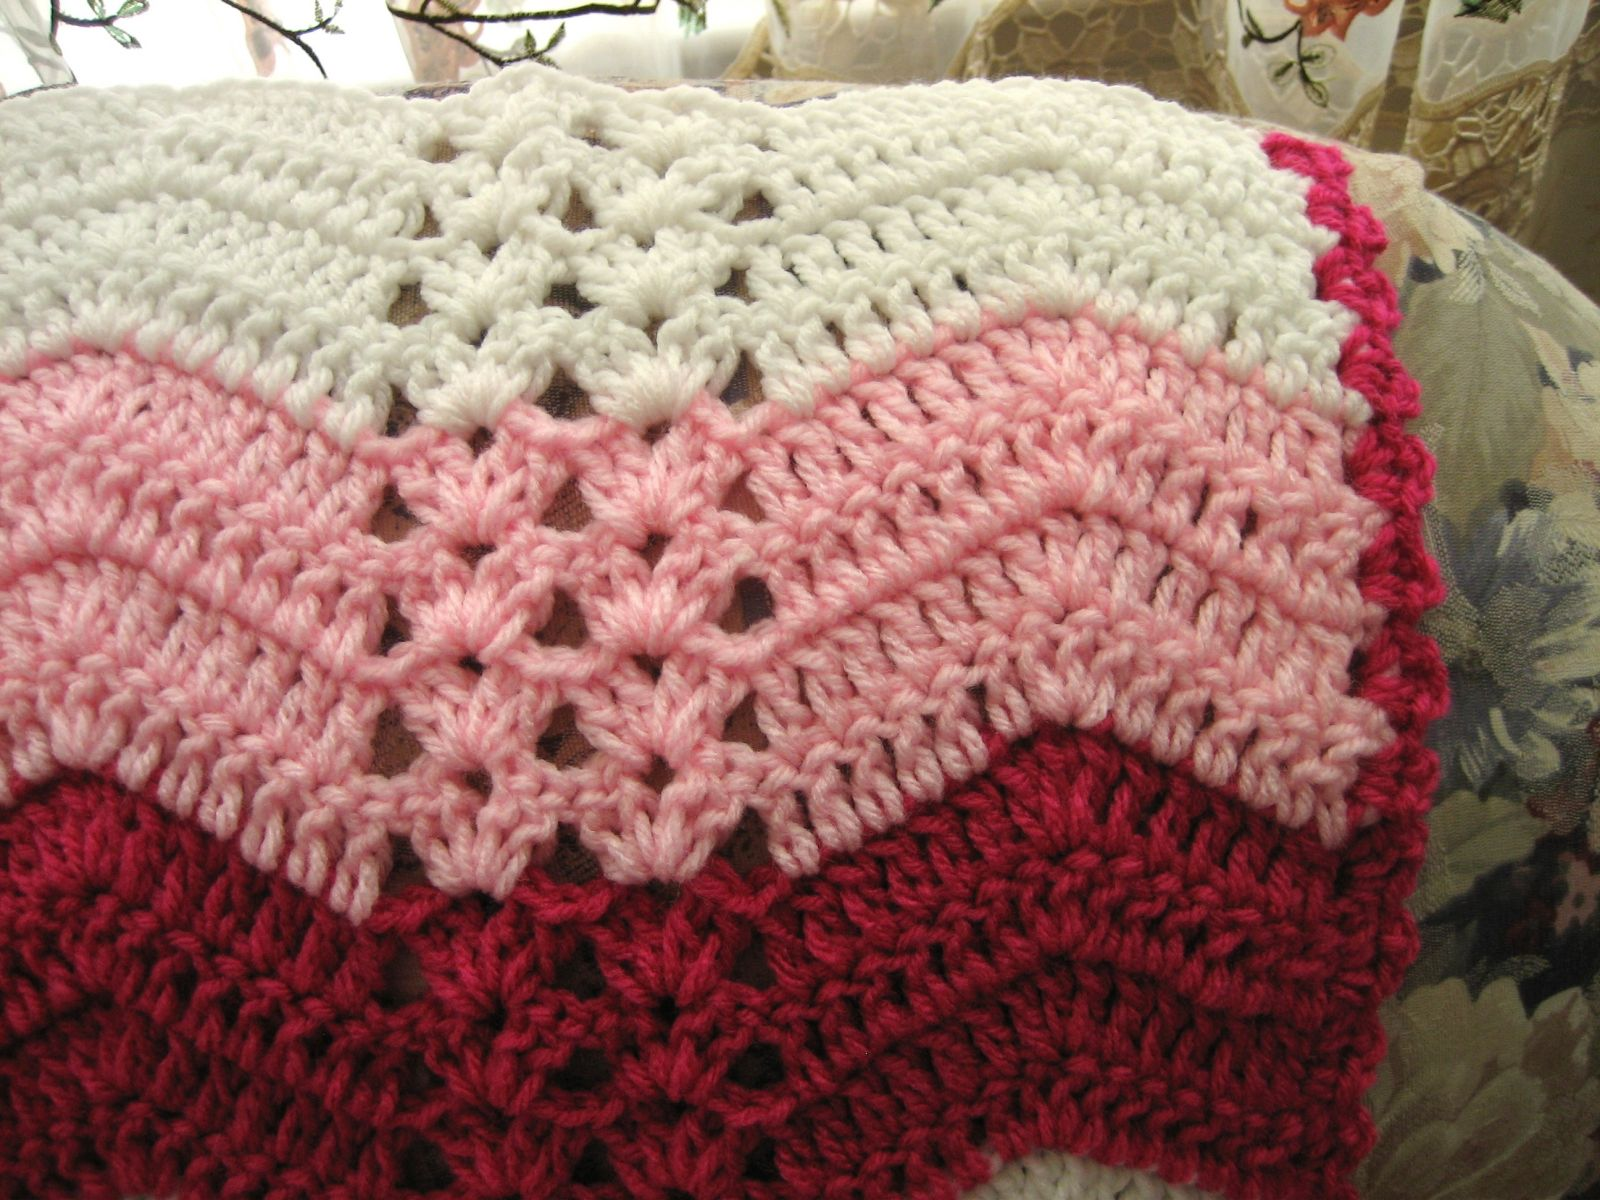 Crochet Patterns Ripple : Ripple Crochet Pattern Related Keywords & Suggestions - Ripple Crochet ...